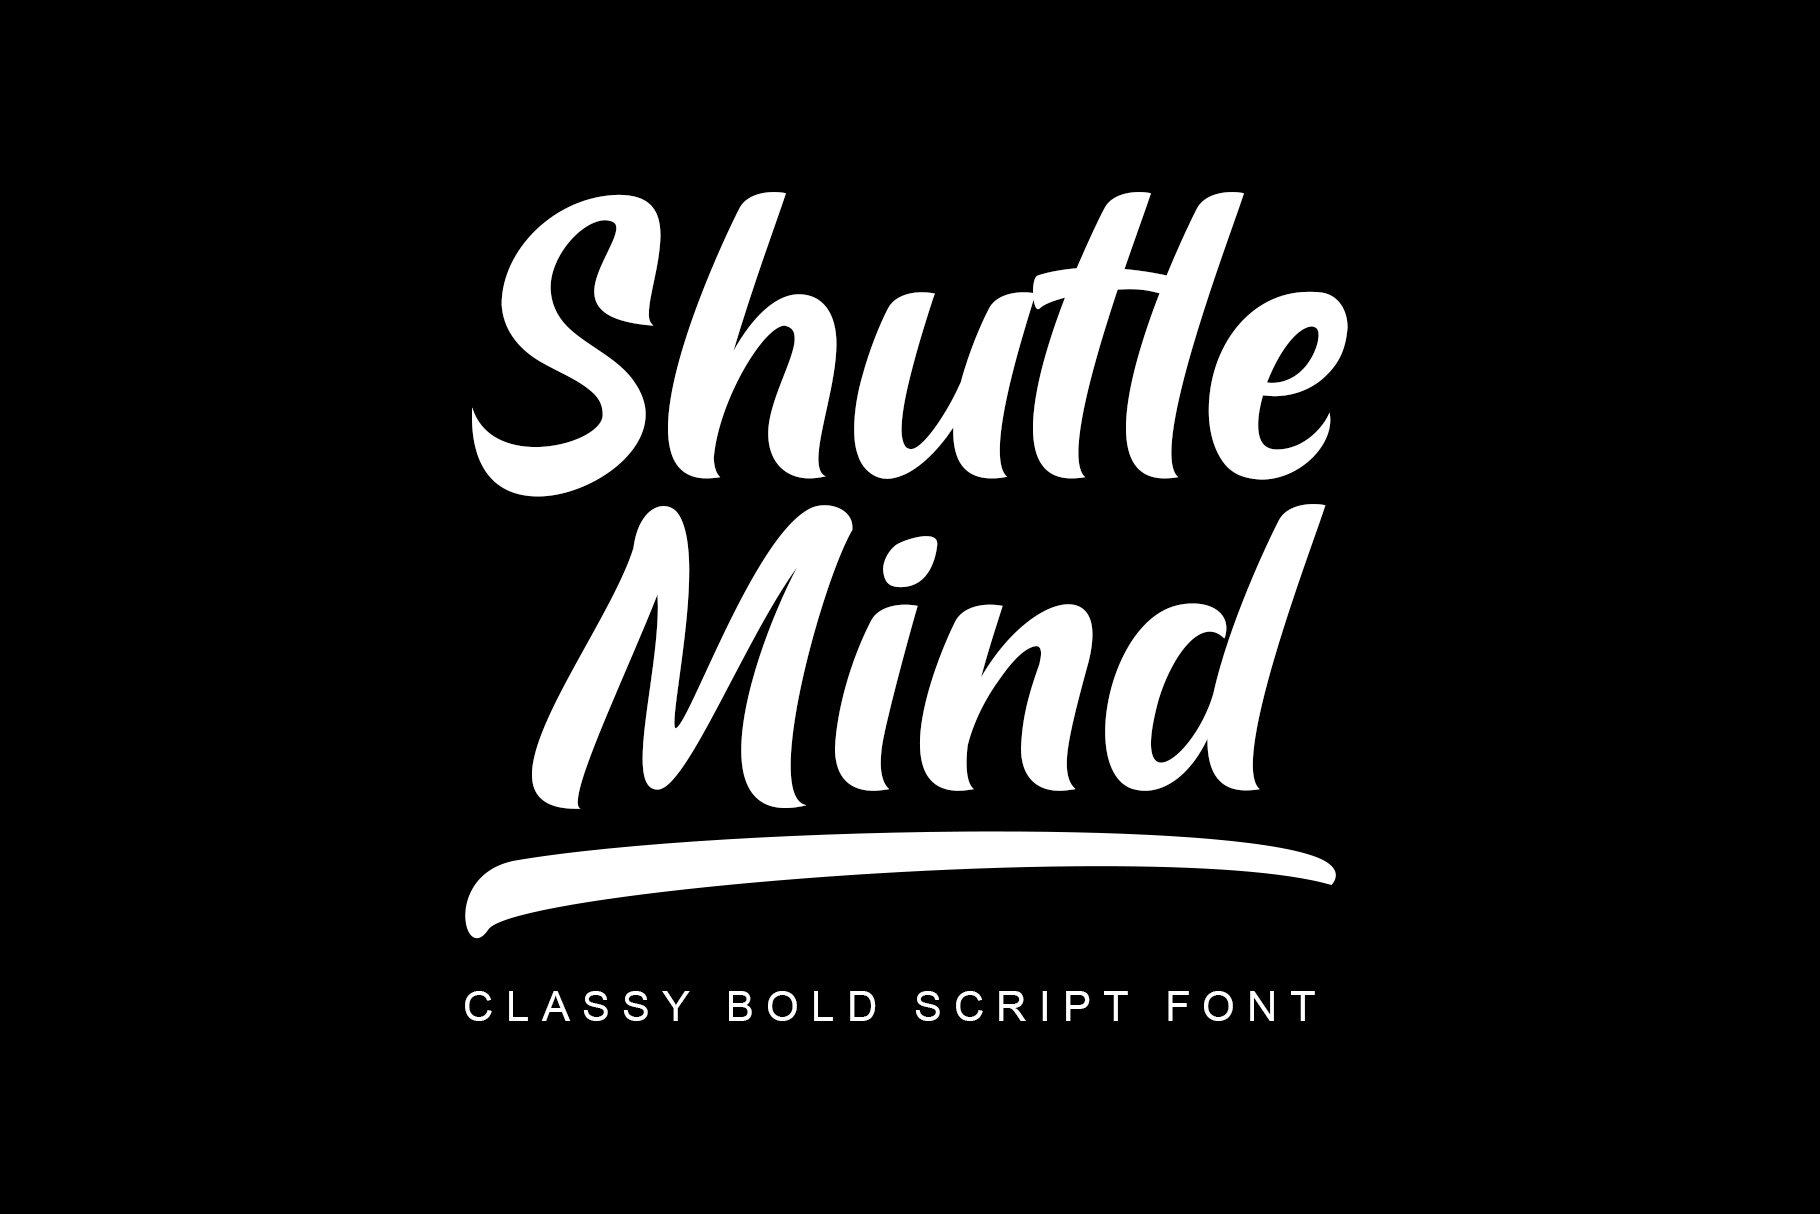 Shutle Mind - Classy Bold Script example image 4